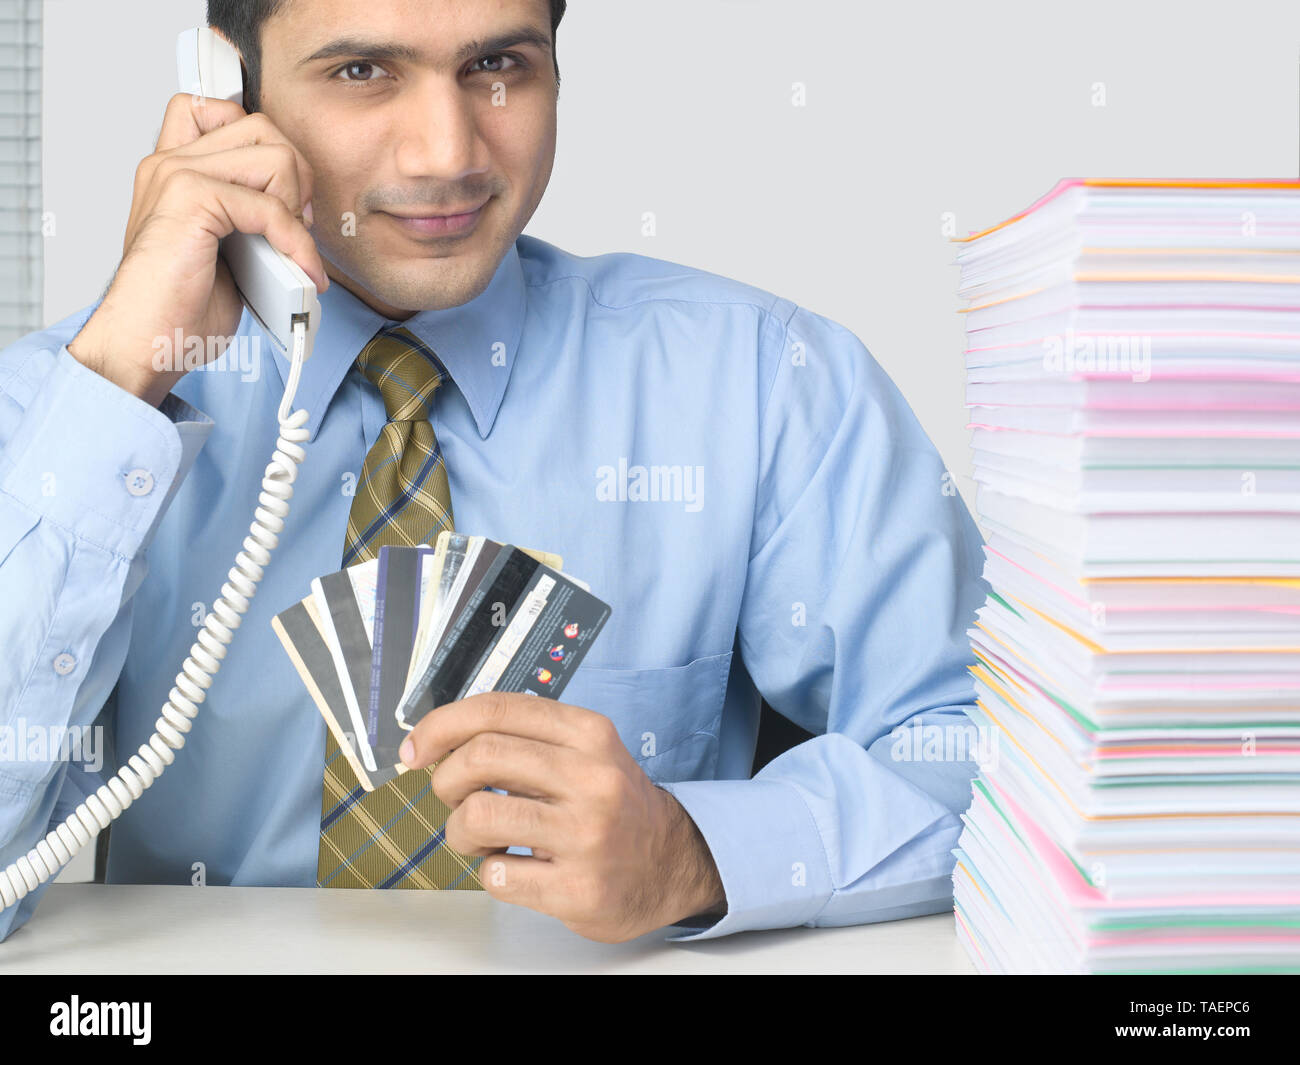 CORPORATE EXECUTIVE HOLDING MULTIPLE CREDIT CARDS WITH A HEAP OF PAPERS ON HIS DESK Stock Photo